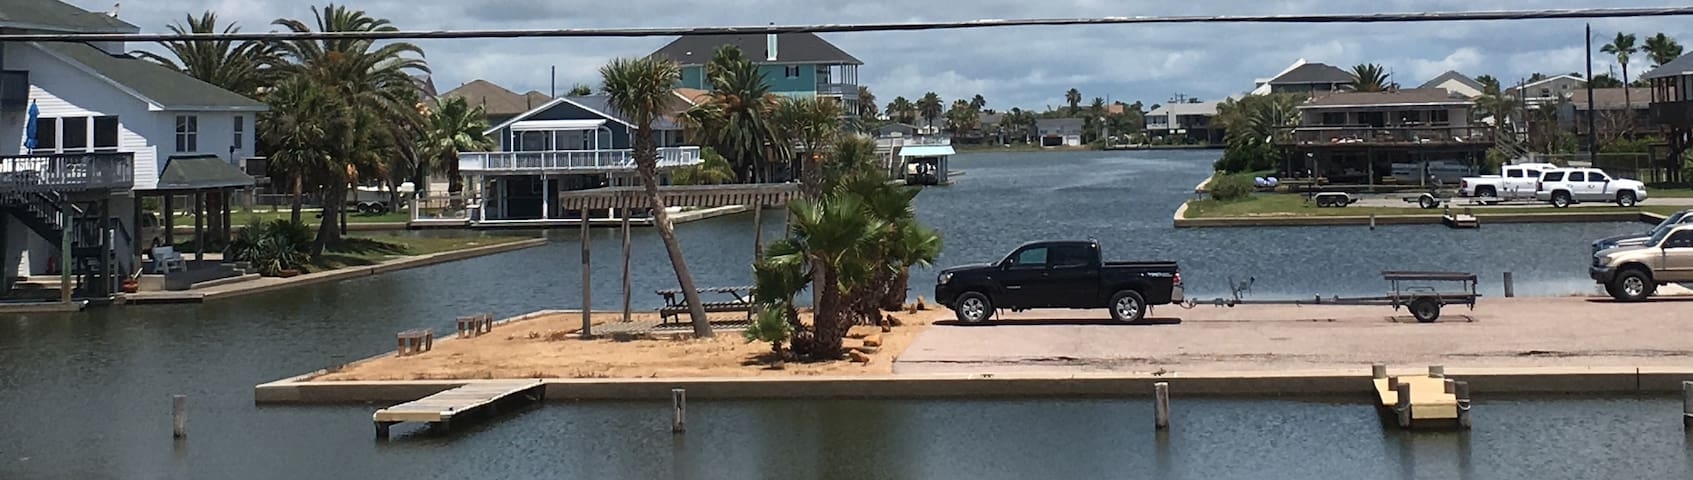 ★★ Waterfront:Great FISHING:Private Dock Slip: ★★